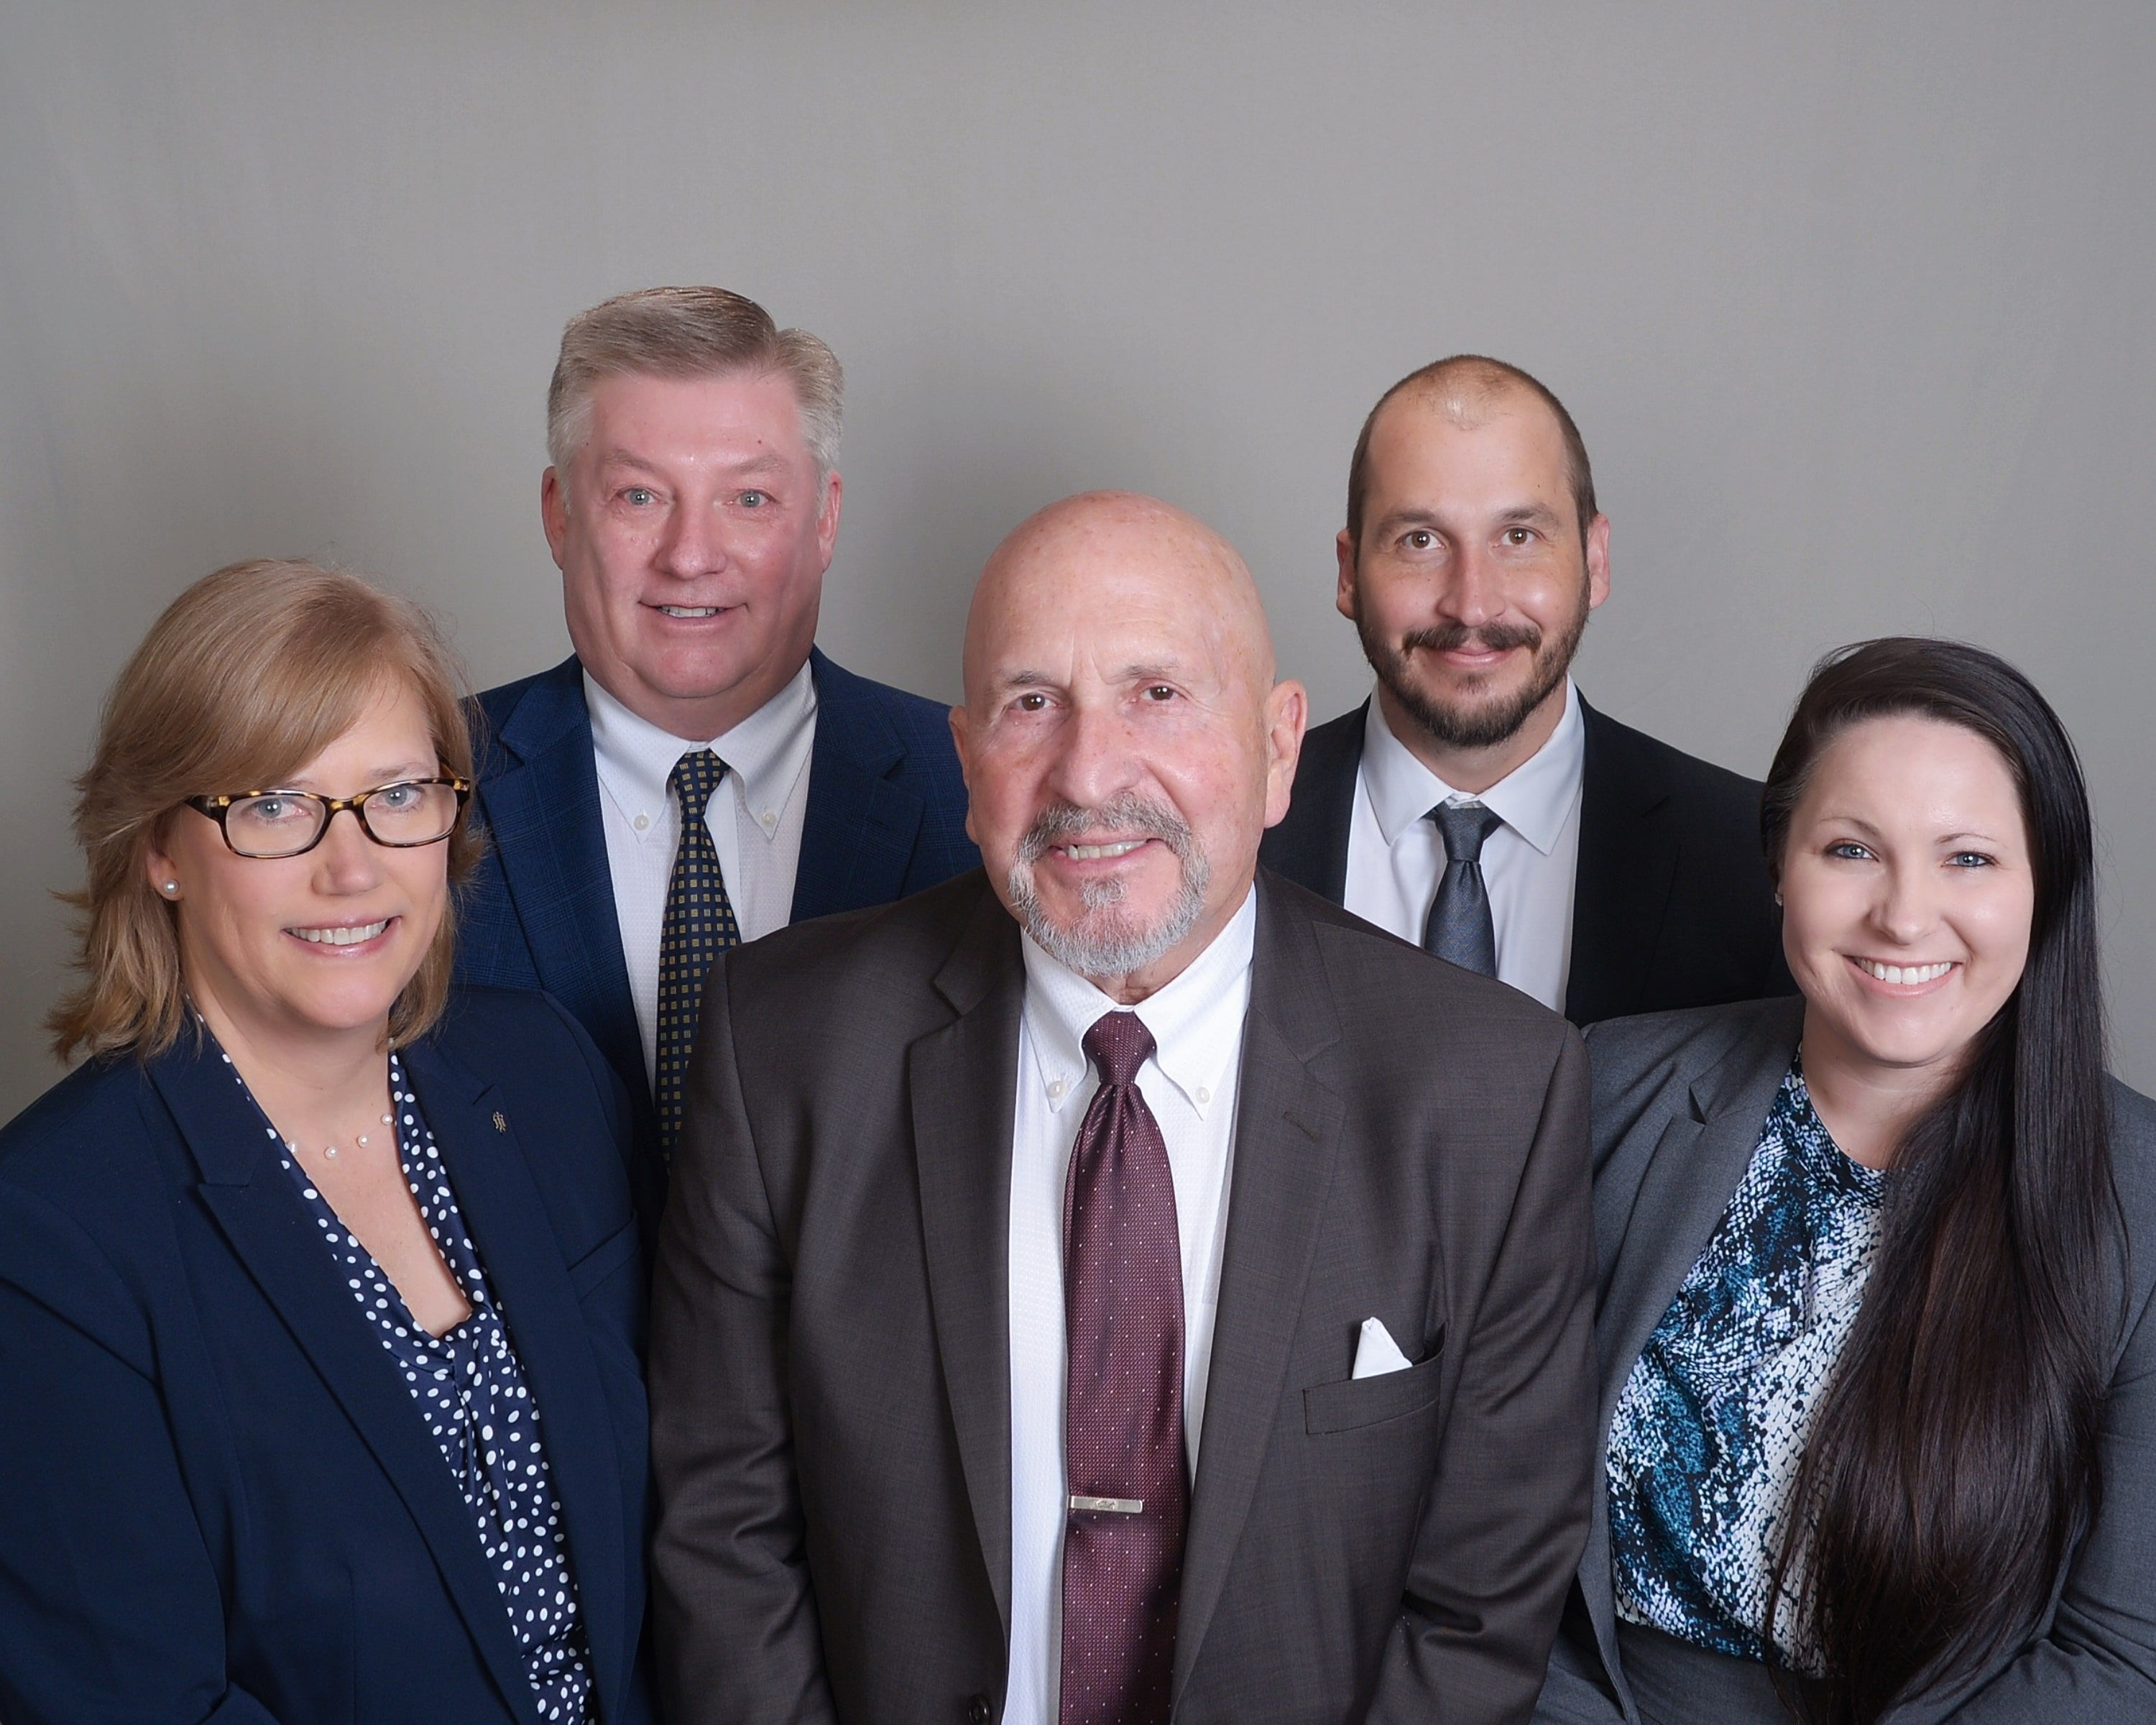 The team at the Bridgeford Law Office